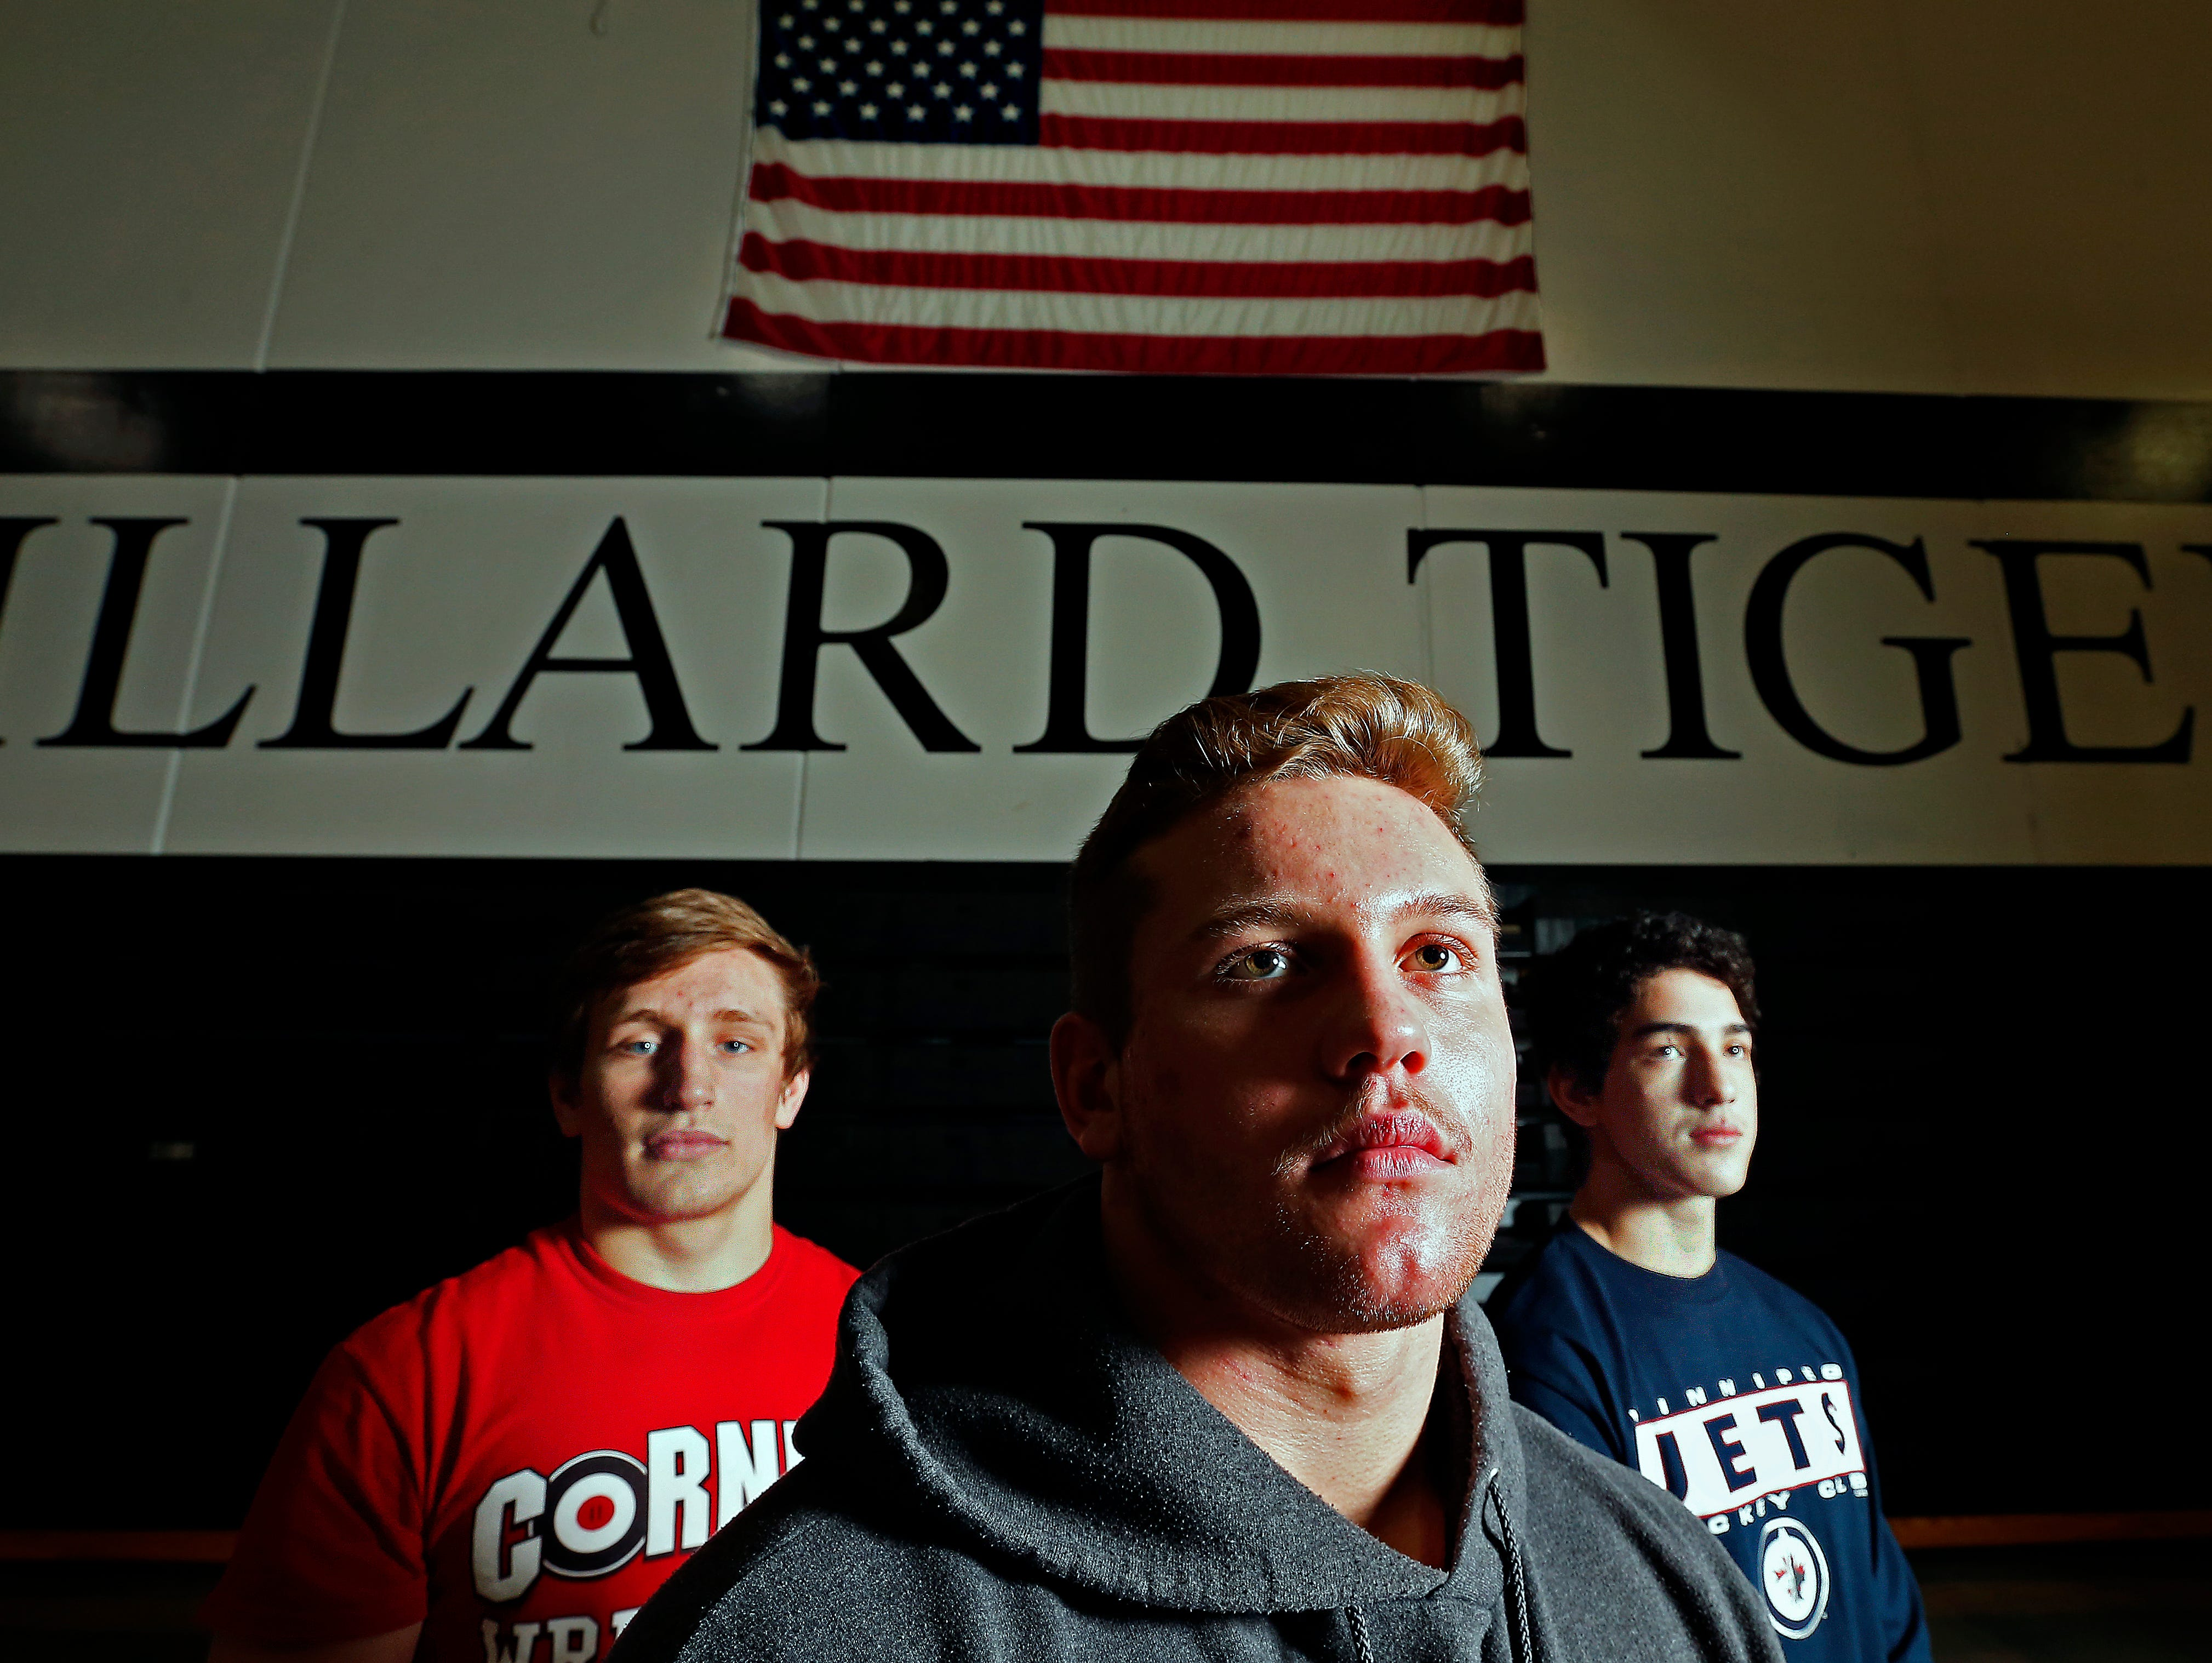 Willard High School wrestlers (from left) Kyle Caldwell, Hunter Yeargan and Niko Chavez took a break from training for the state wrestling tournament to pose for a portrait at the Willard High School gym in Willard, Mo. on Feb. 16, 2016.